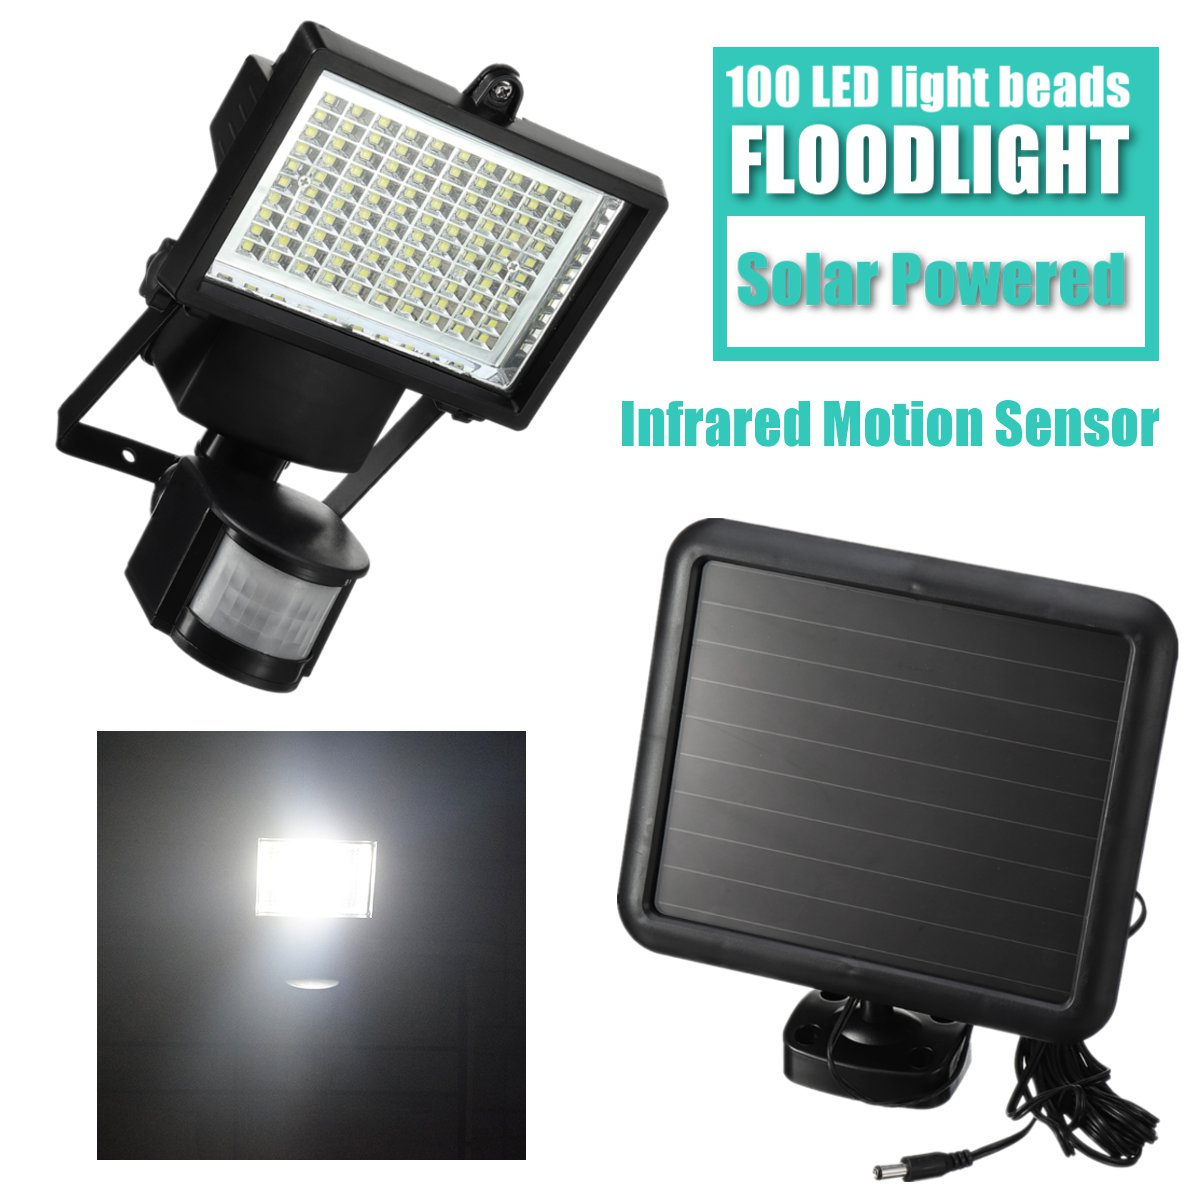 Solar Powered Floodlight Spotlight 100 LED Projector Lamp Infrared Motion Sensor Security Street Light Outdoor Garden PIR Lamp